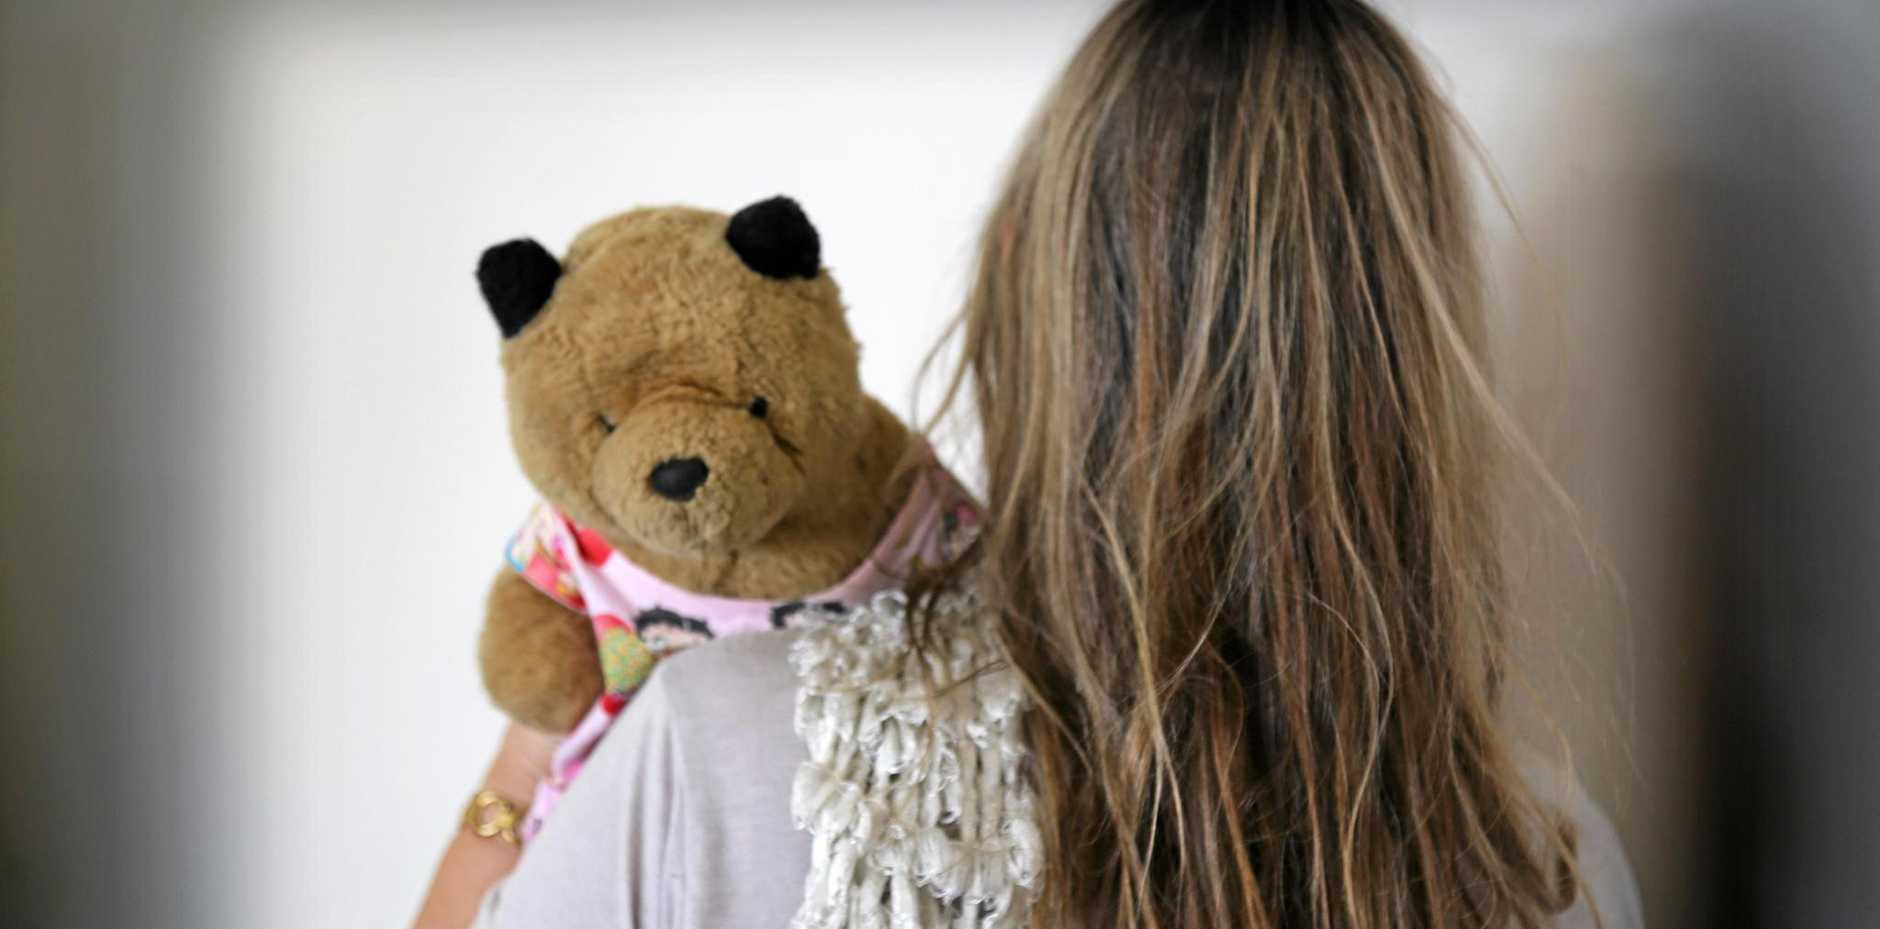 KEEPING FAITH: Domestic violence survivor Faith Wood with Fleabear.